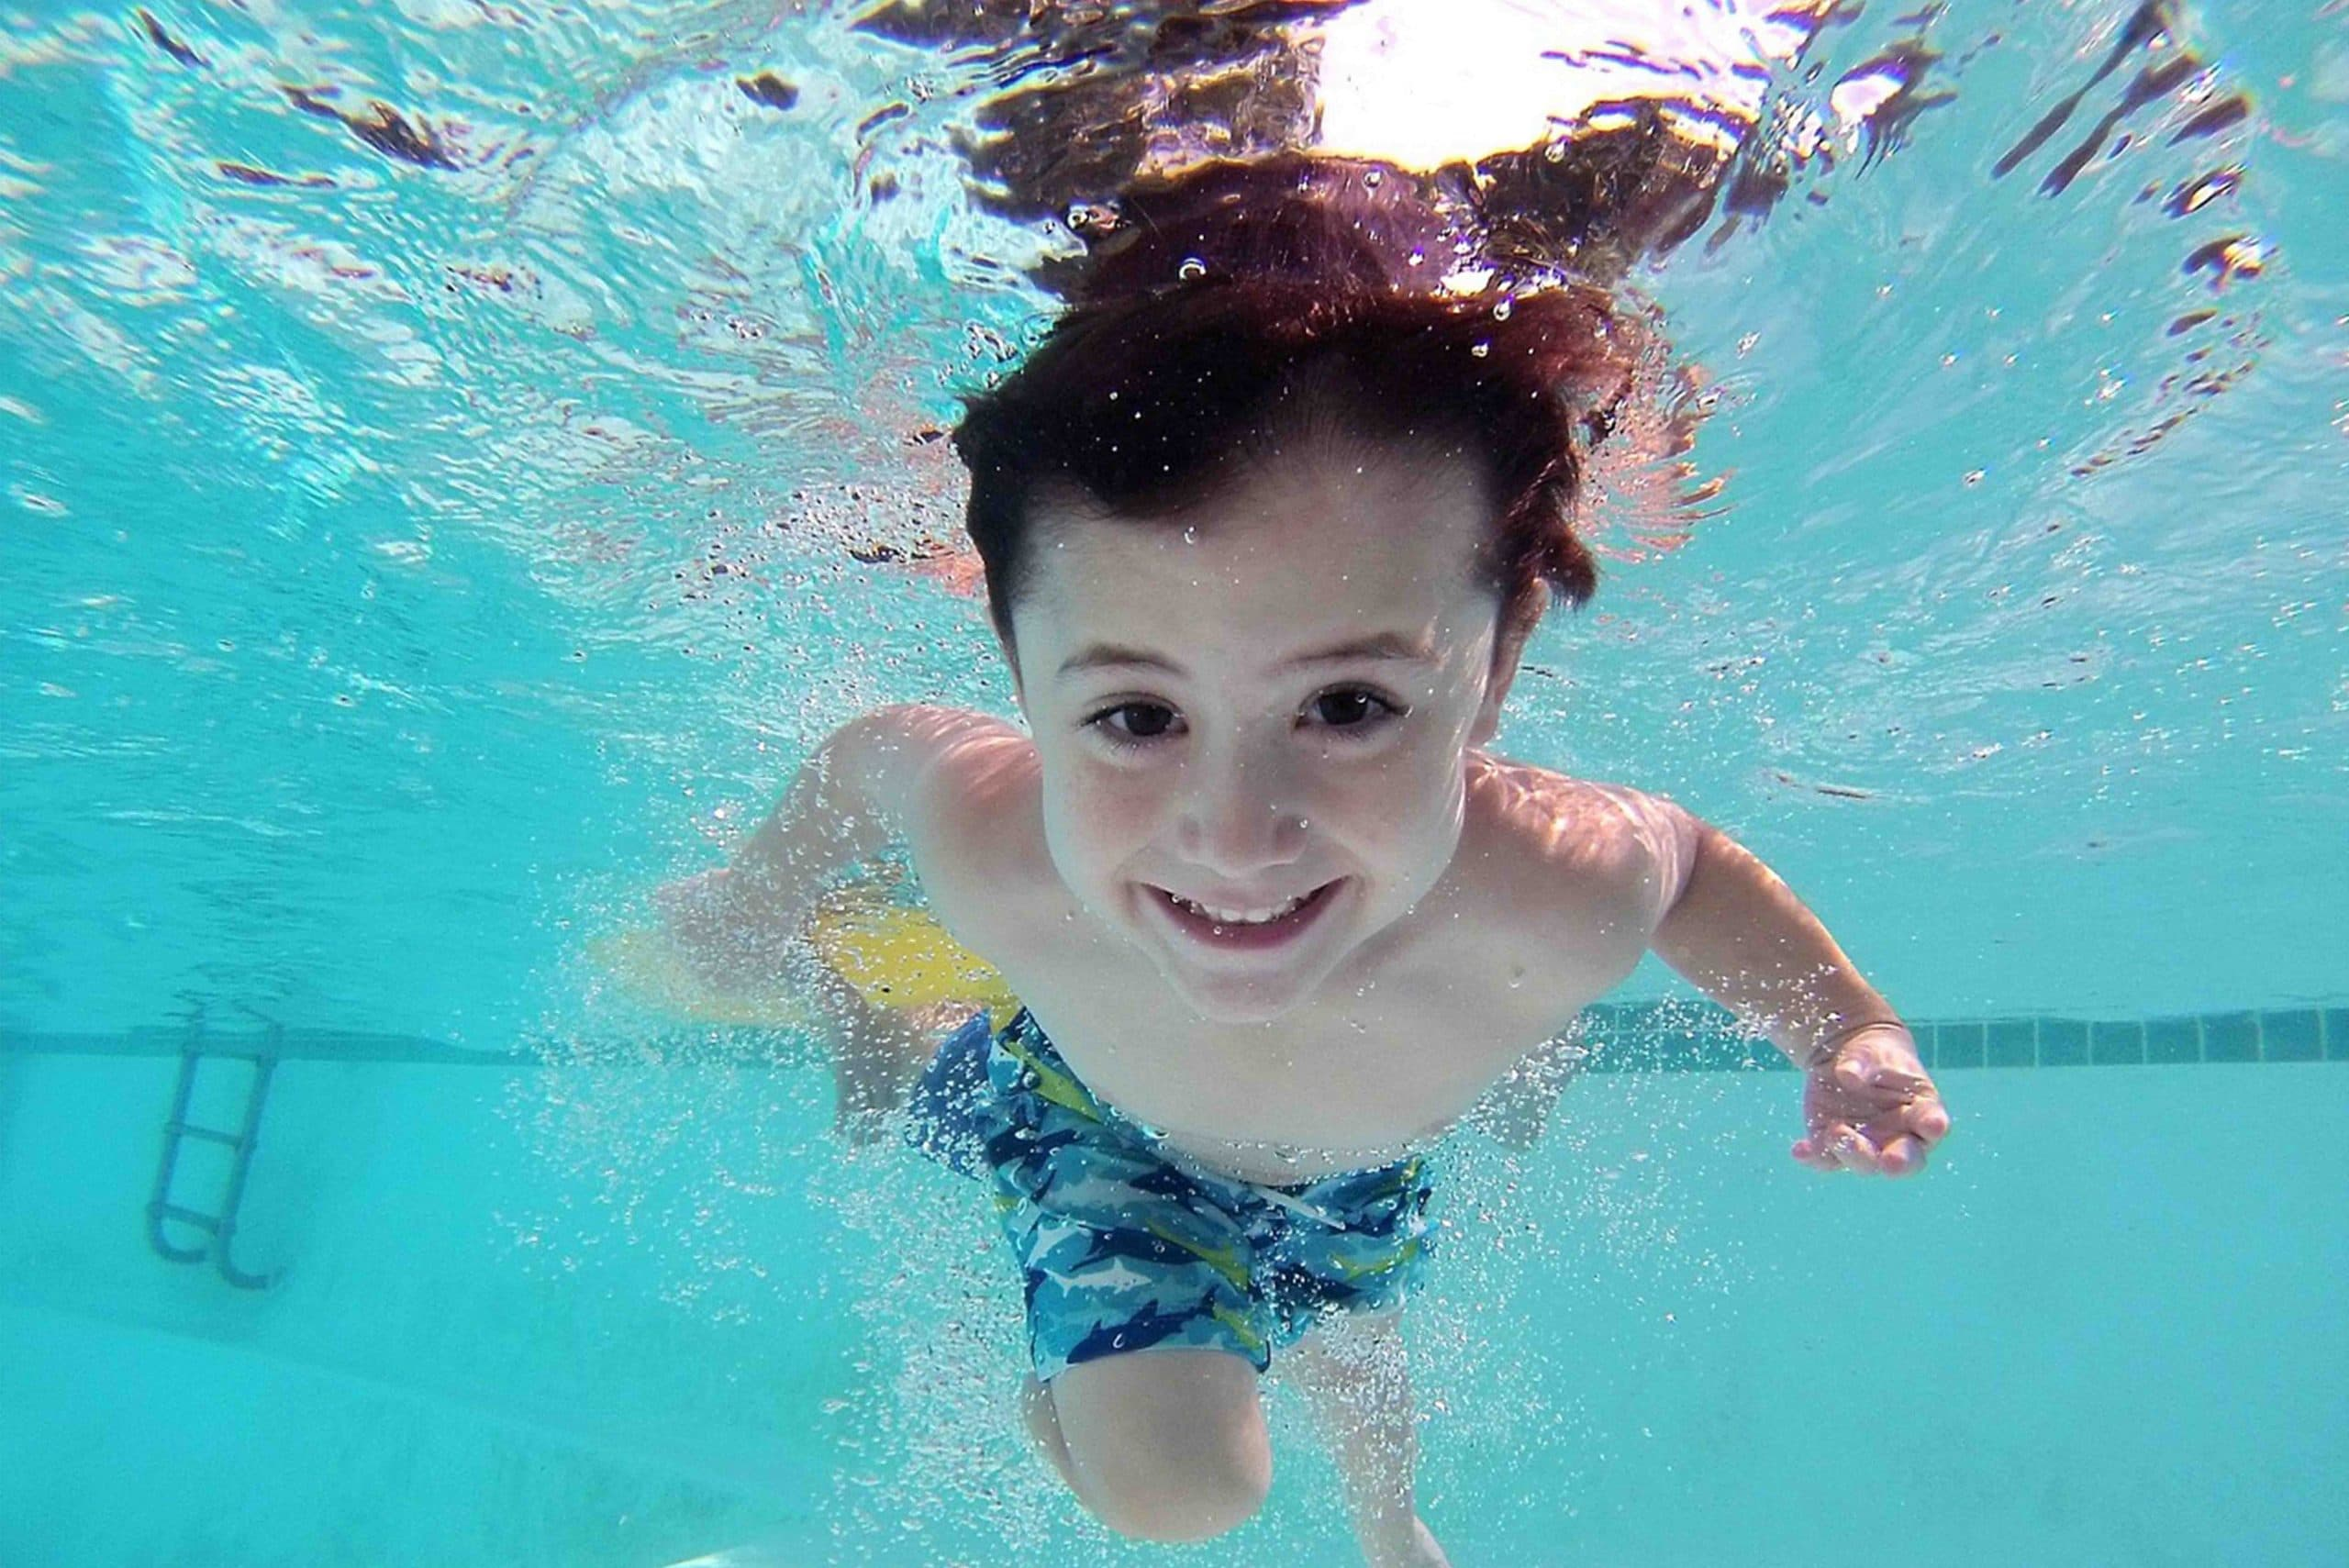 Young boy under water in a swimming pool he is smiling at the camera